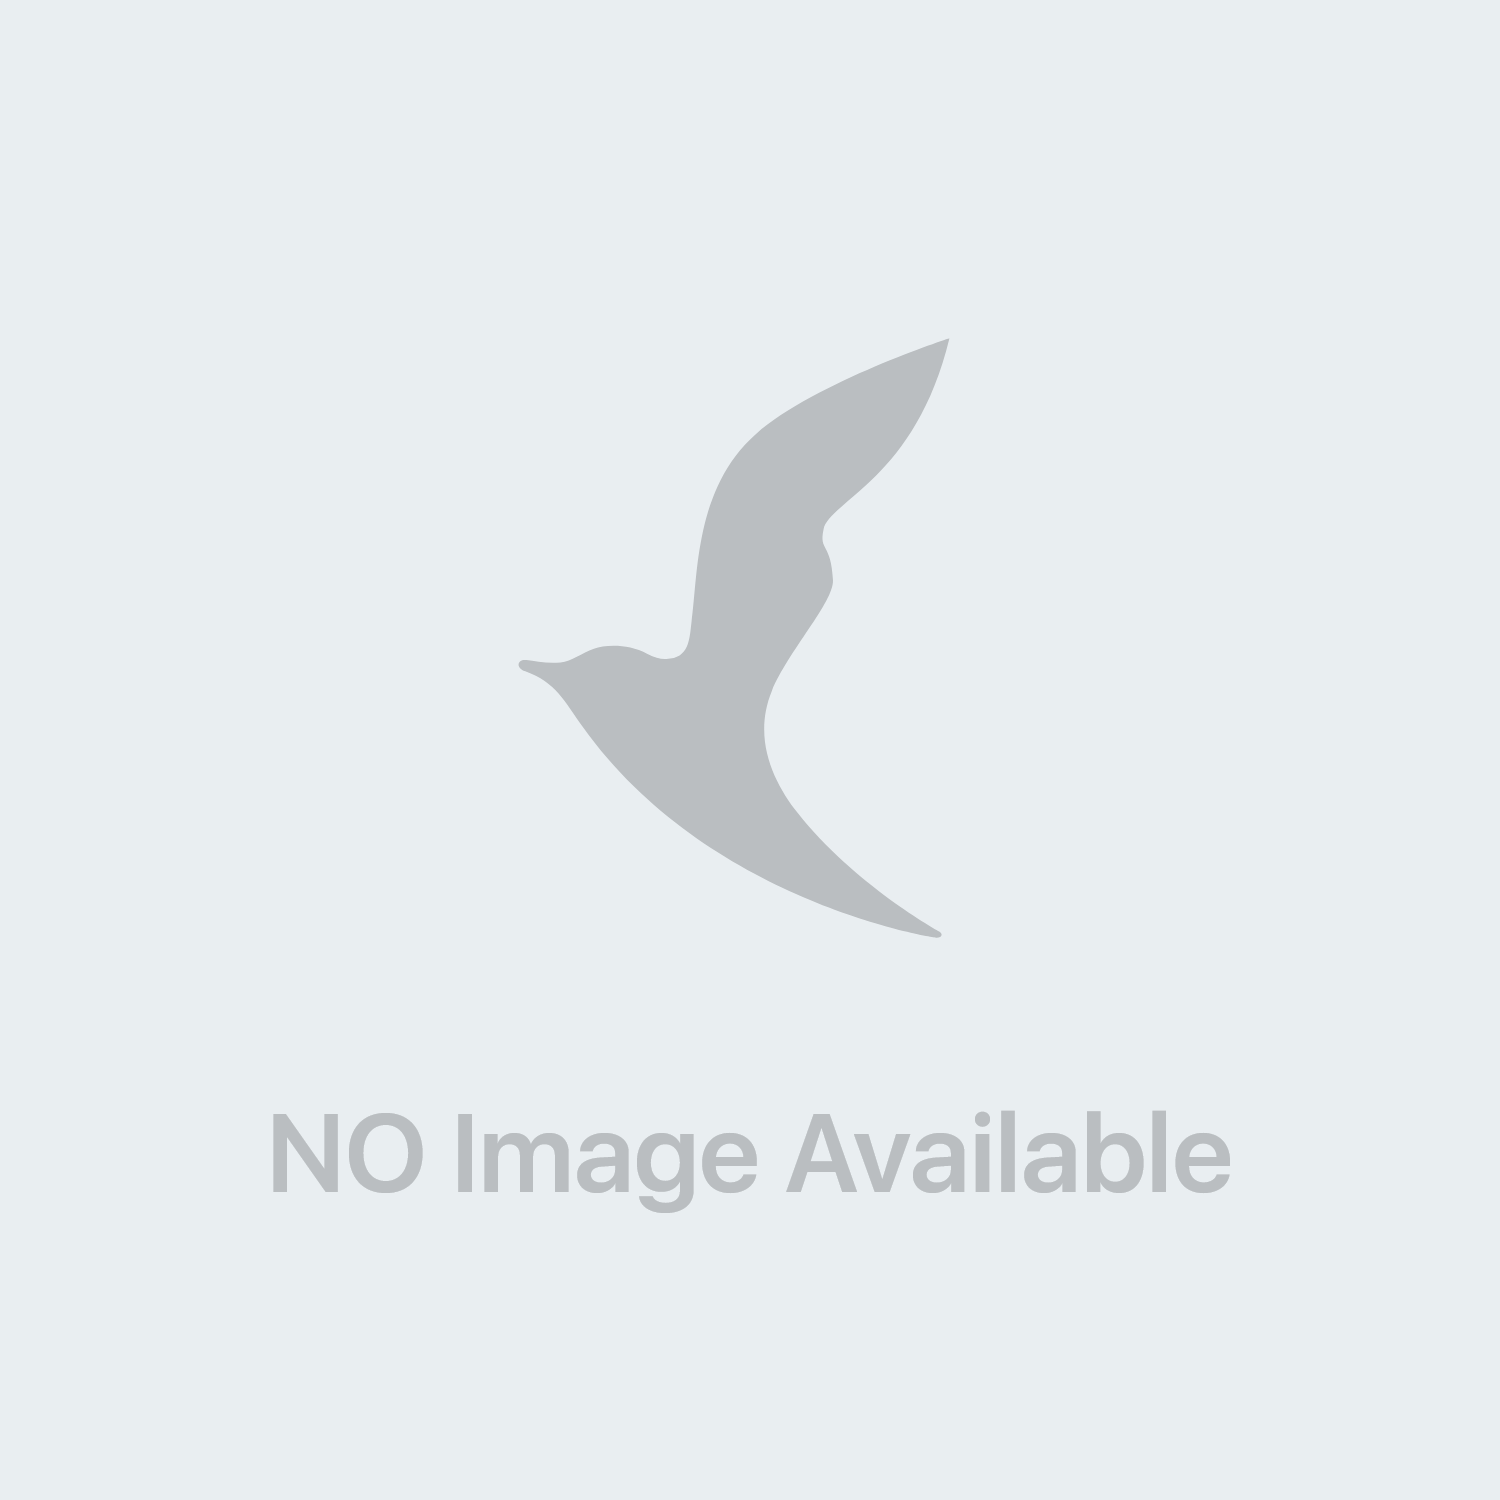 Momendol 24 Compresse Rivestite 220 mg